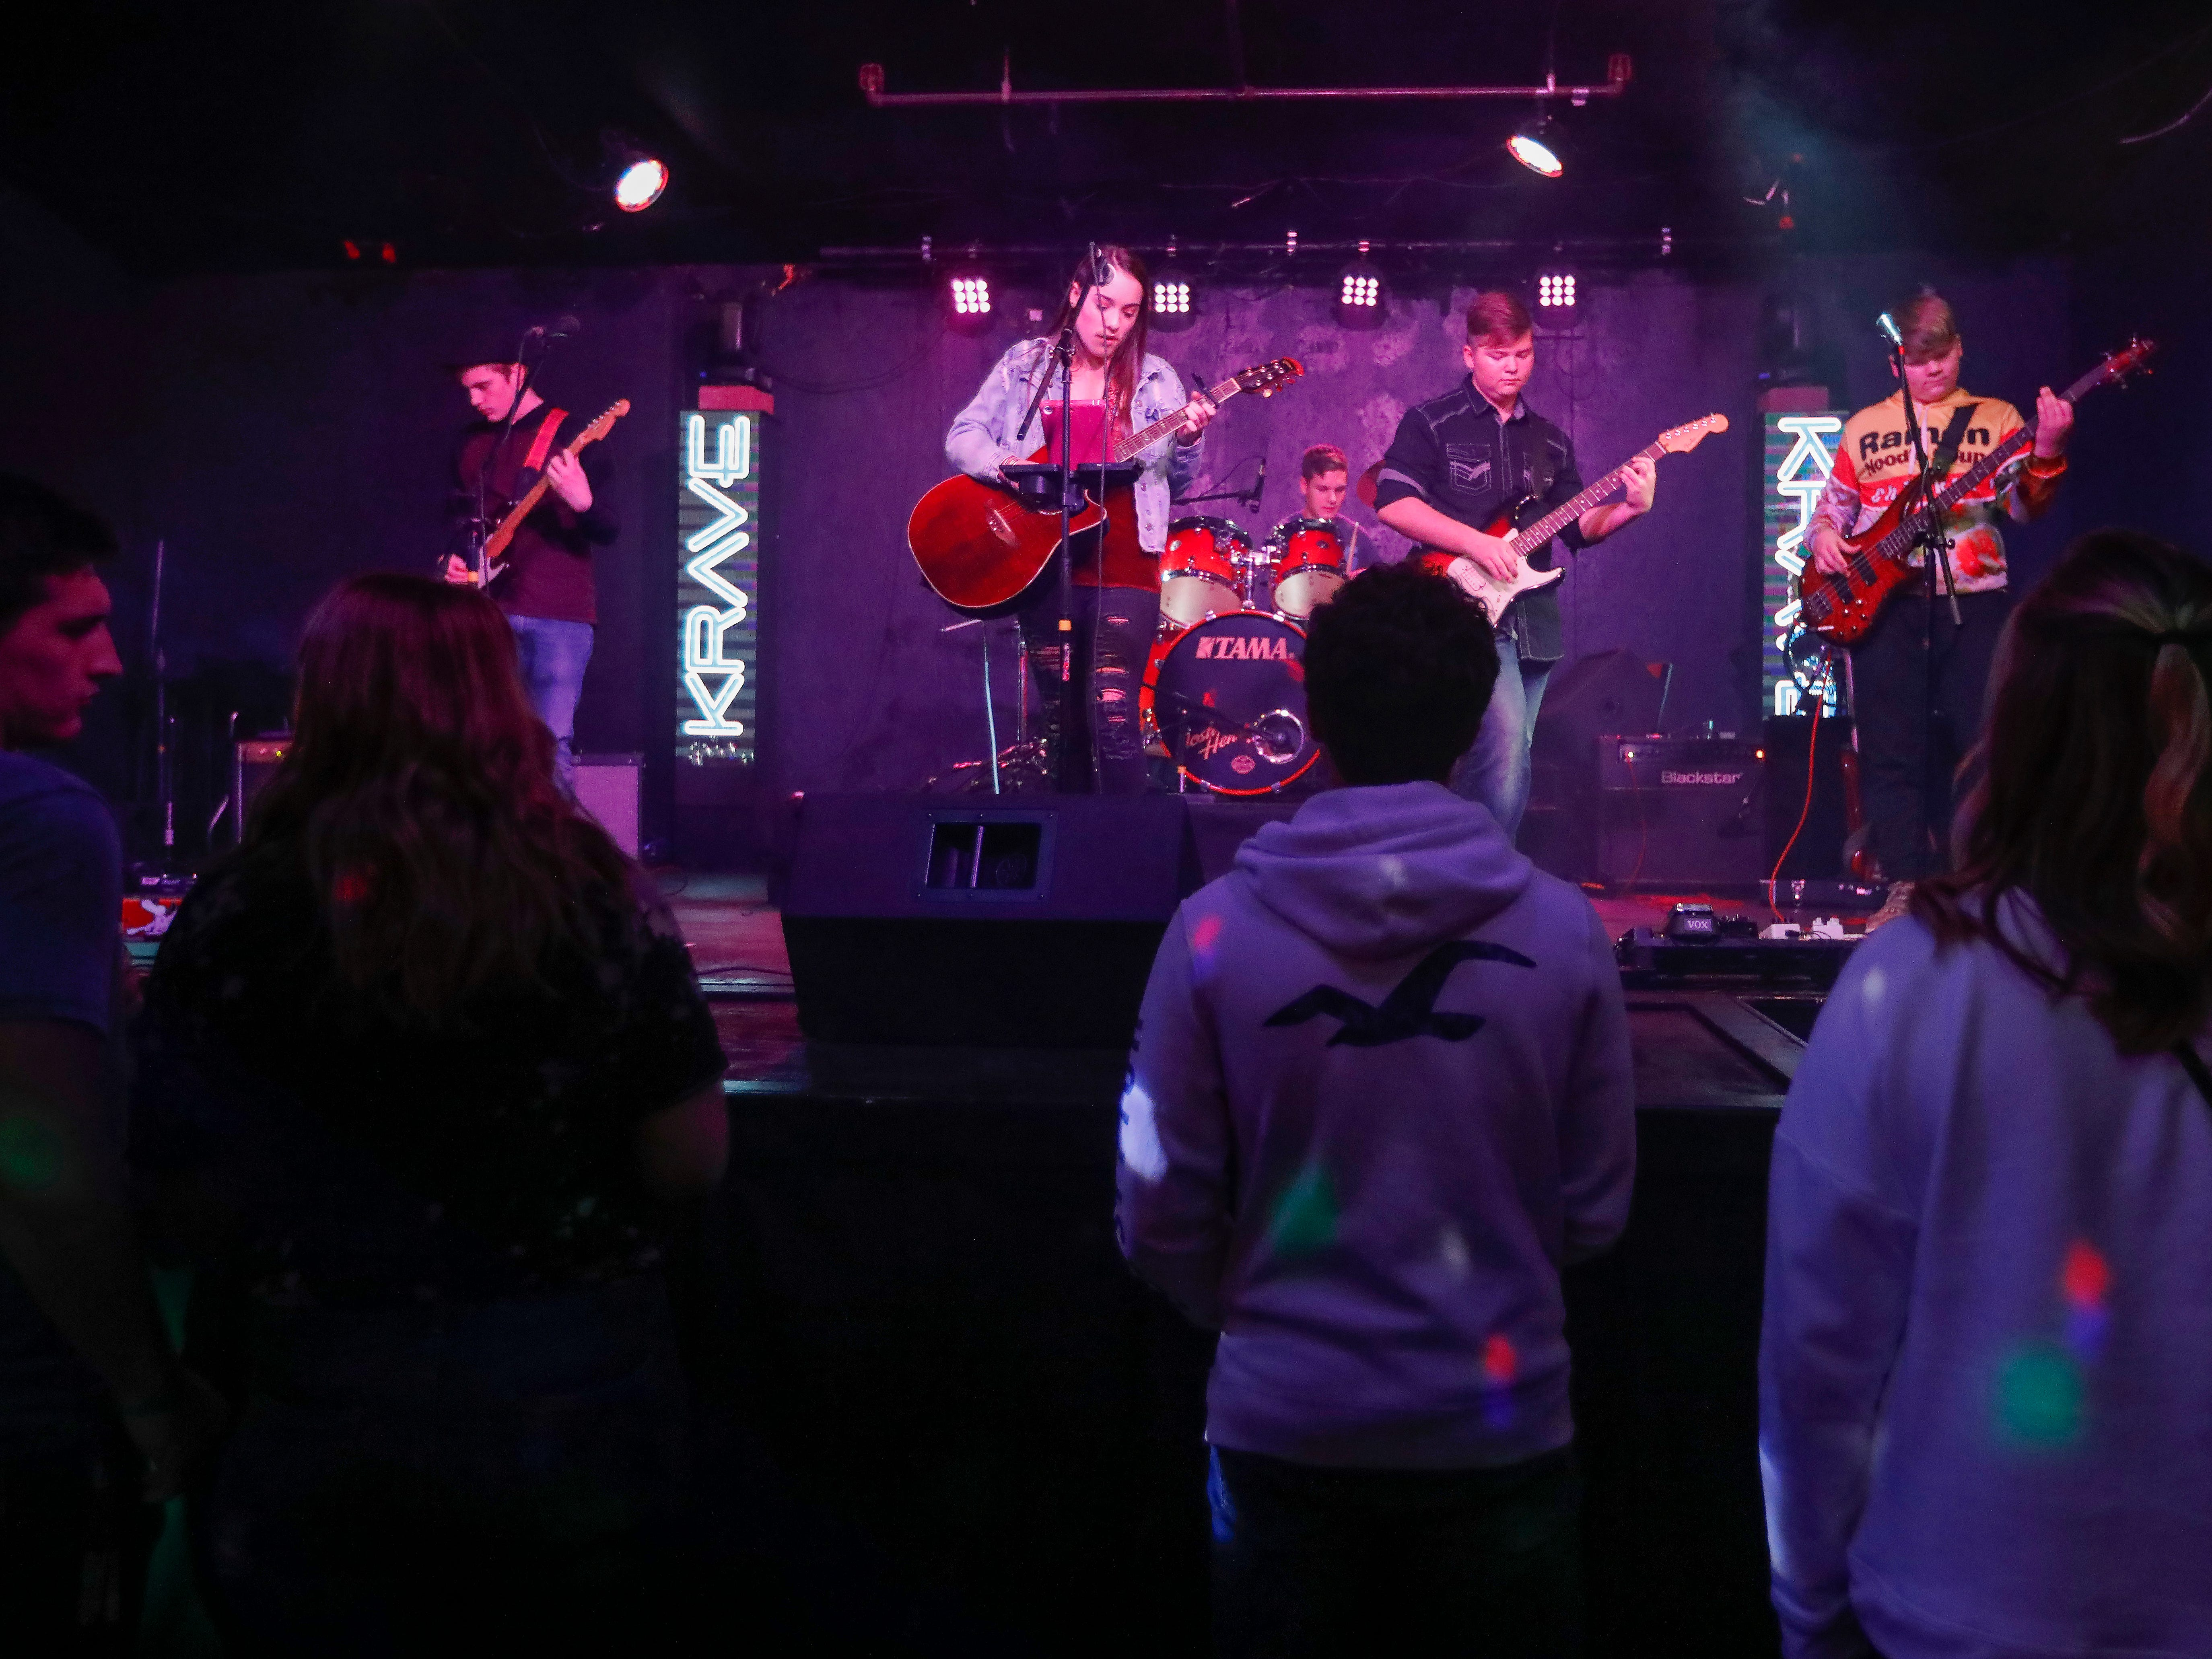 Fishing for Saturday performs at Krave on Friday, Jan. 18, 2019.